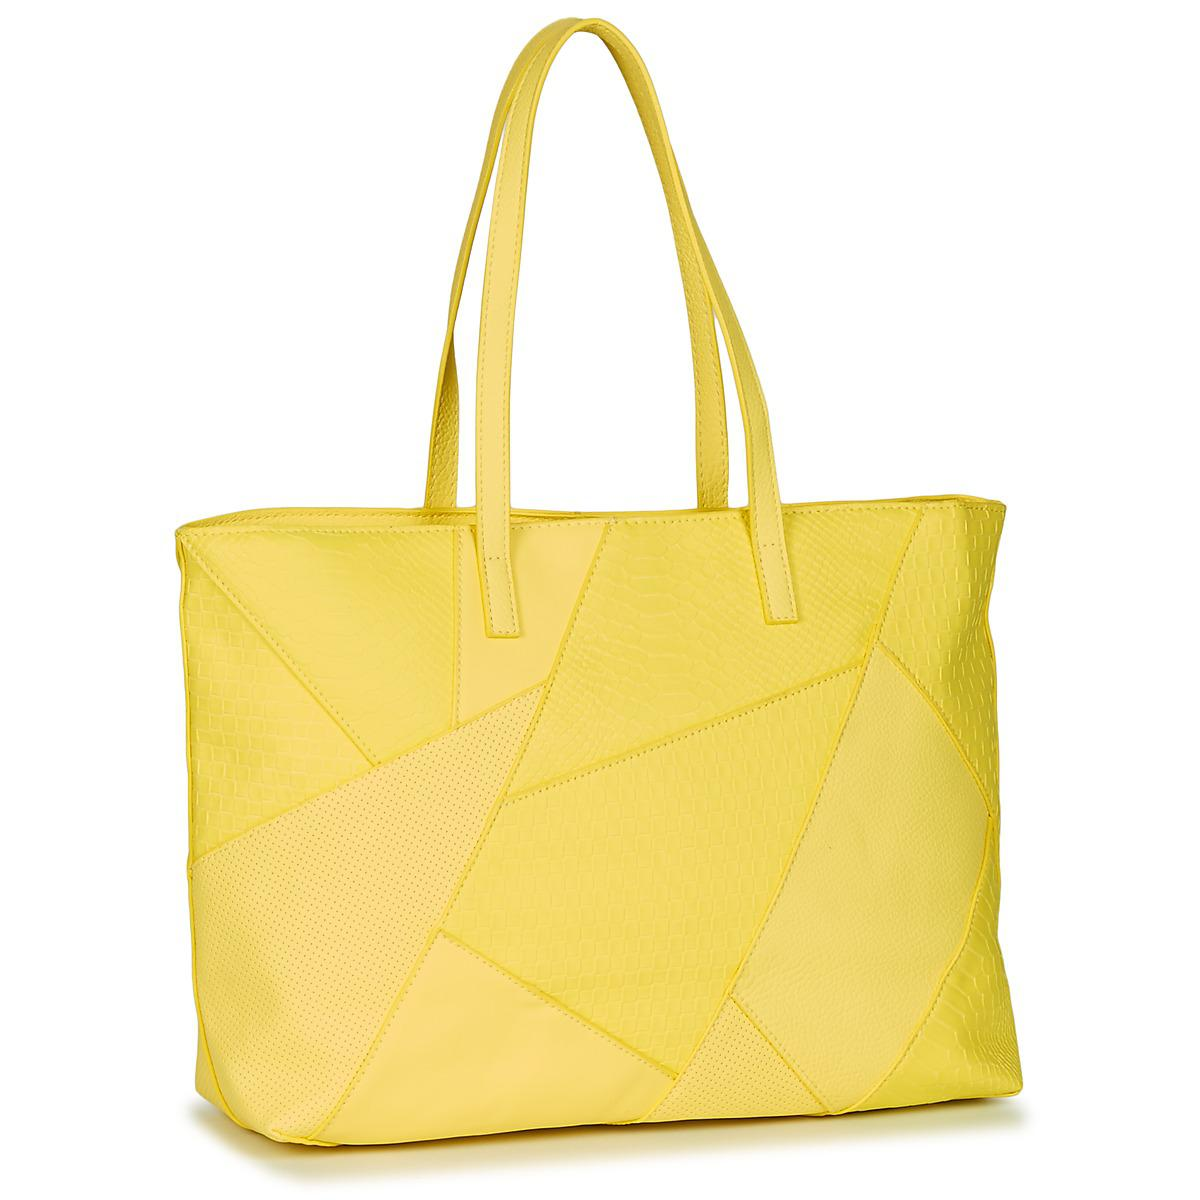 Desigual Bols halley Redmond Women s Shopper Bag In Yellow in Yellow ... 9c5284b43ef18